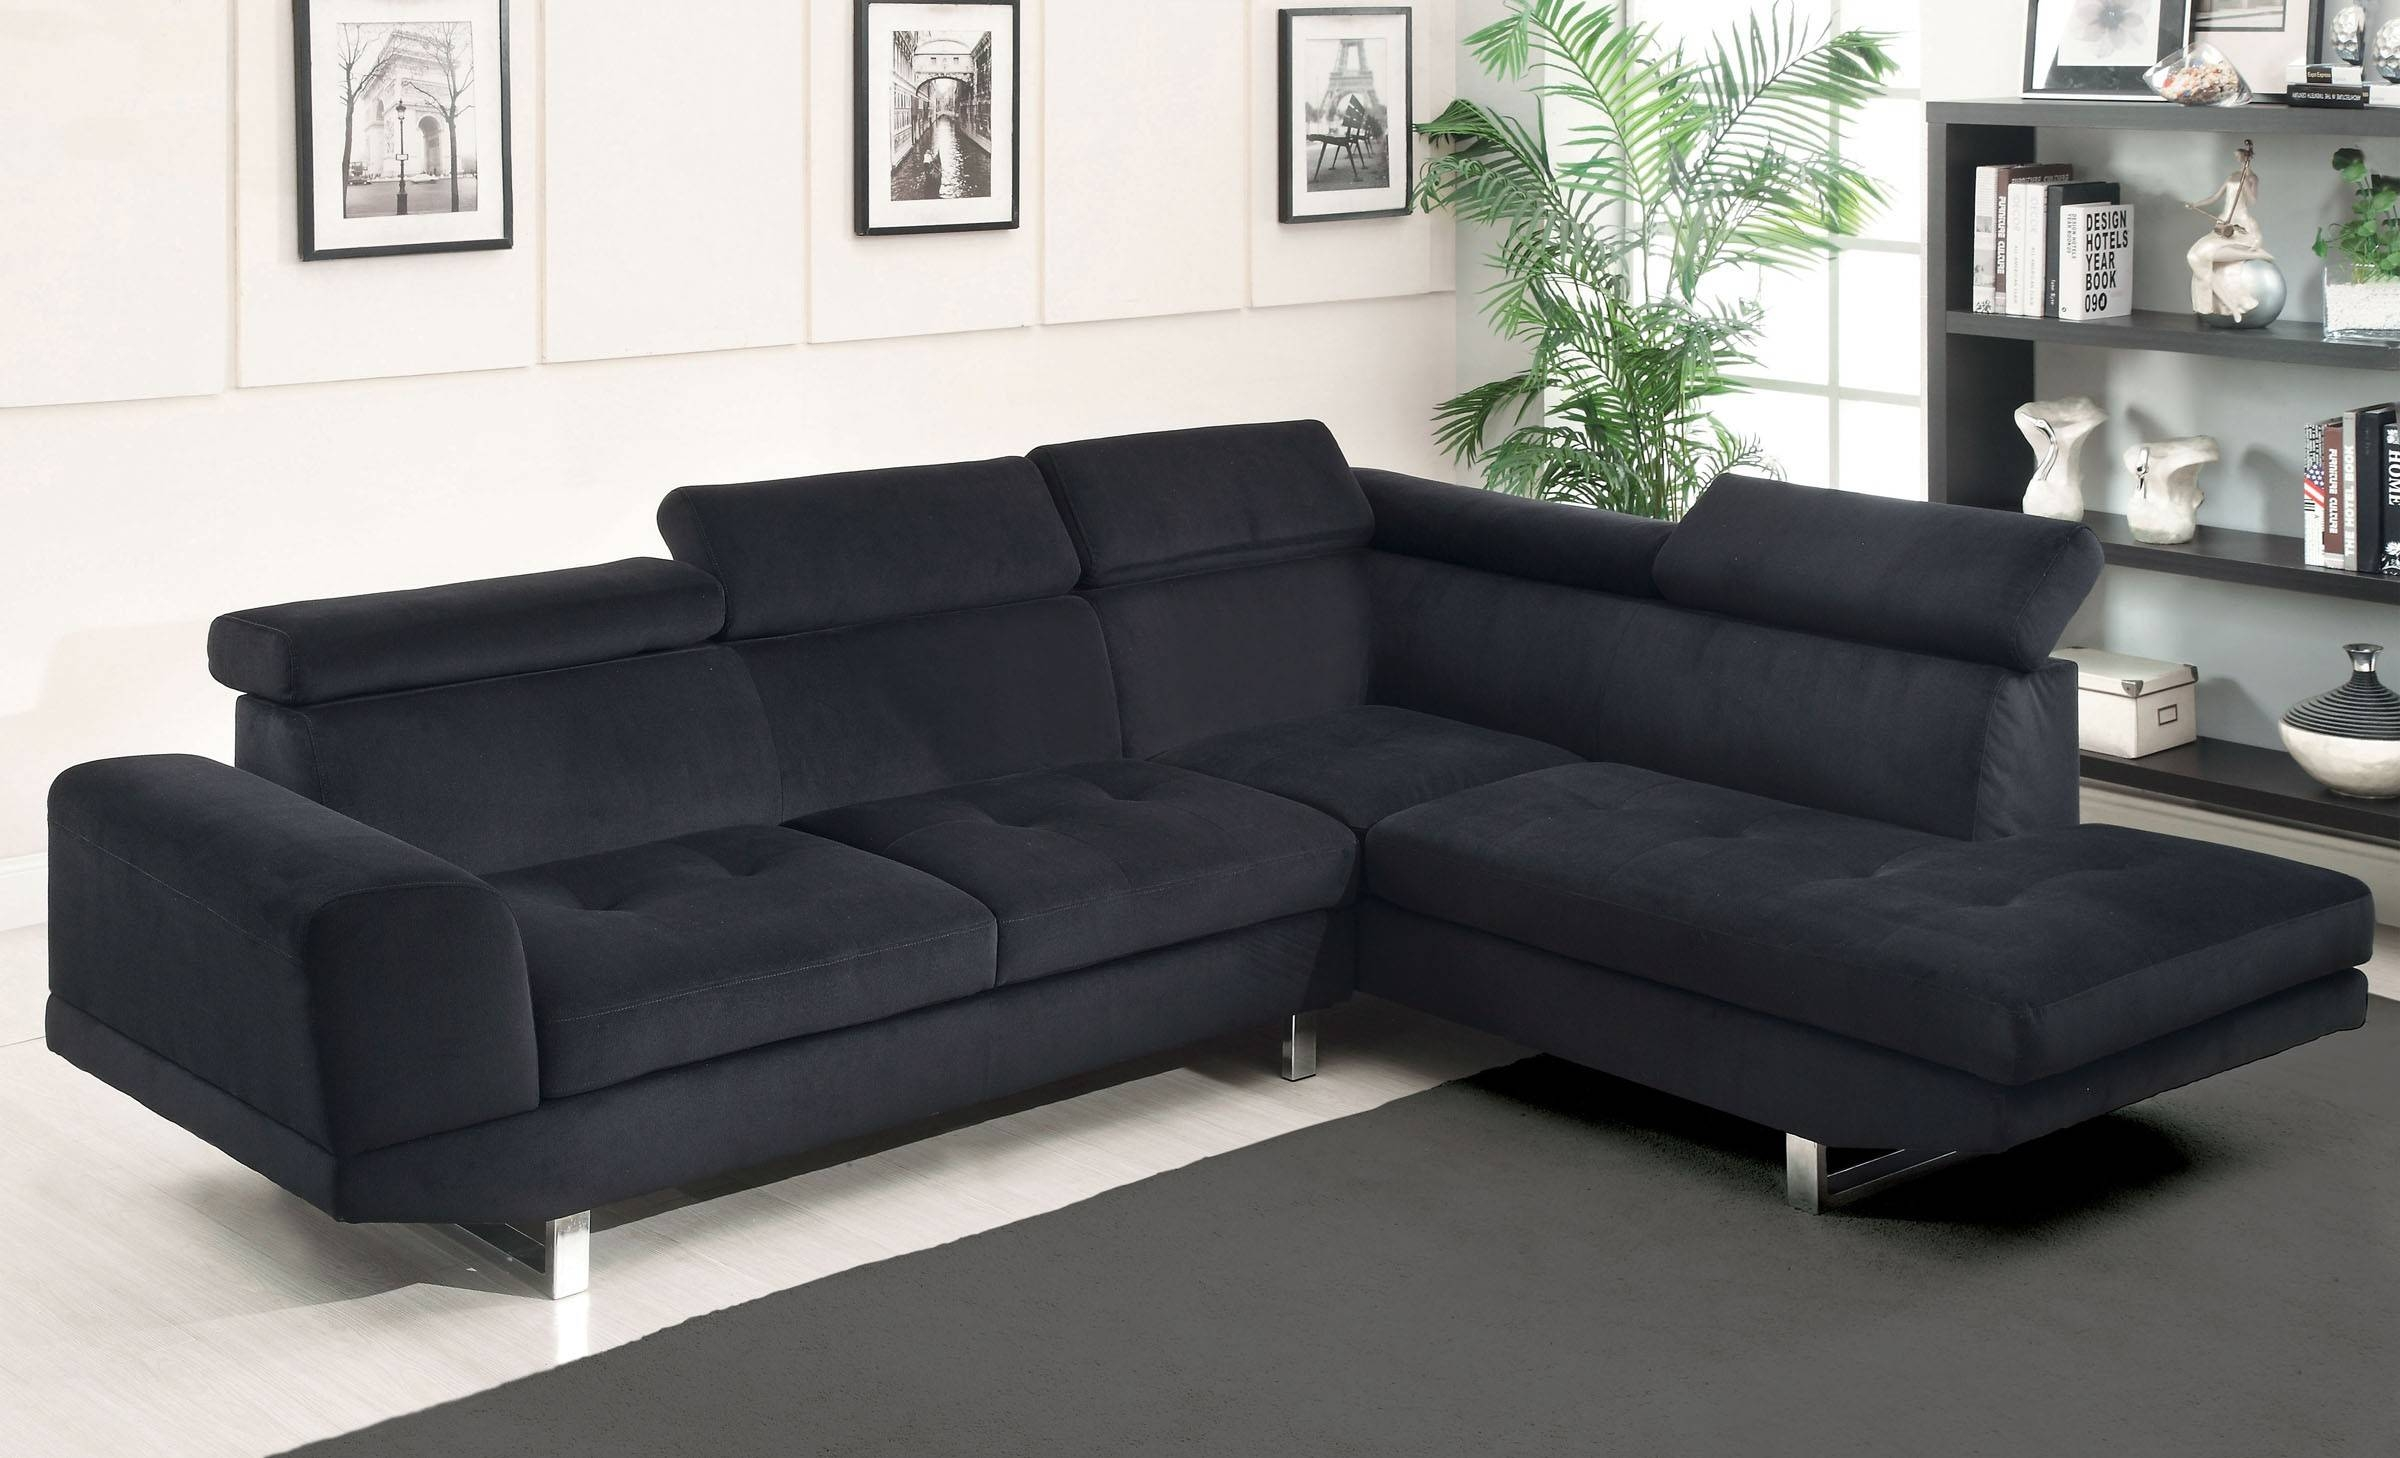 Black Sofas For Sale | Tehranmix Decoration for L Shaped Fabric Sofas (Image 7 of 30)